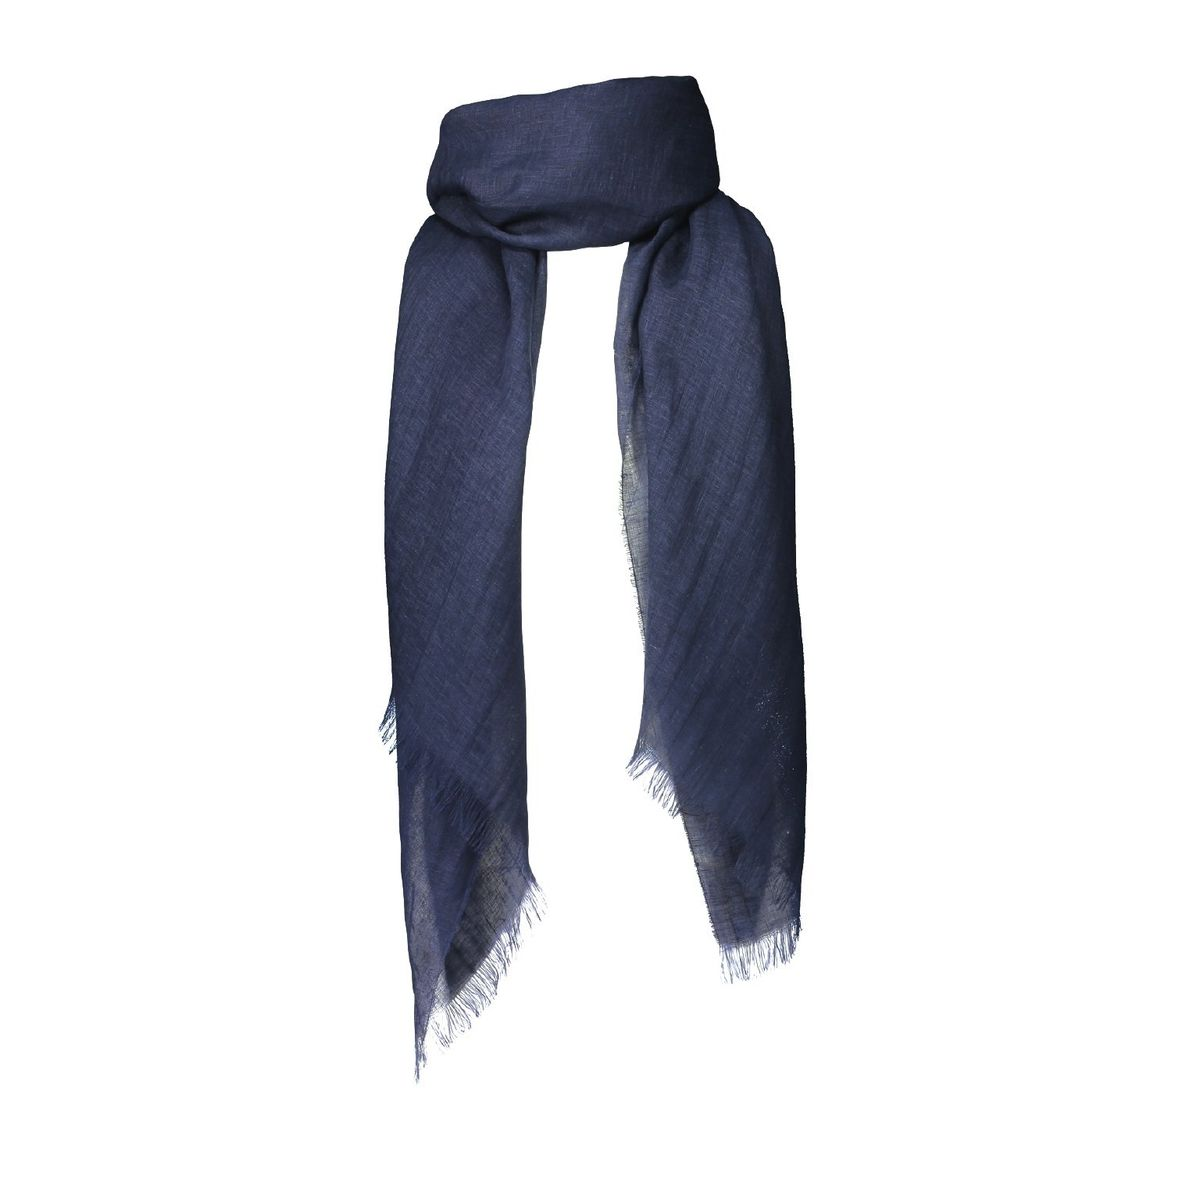 Balmuir Alessia Linen Scarf Midnight